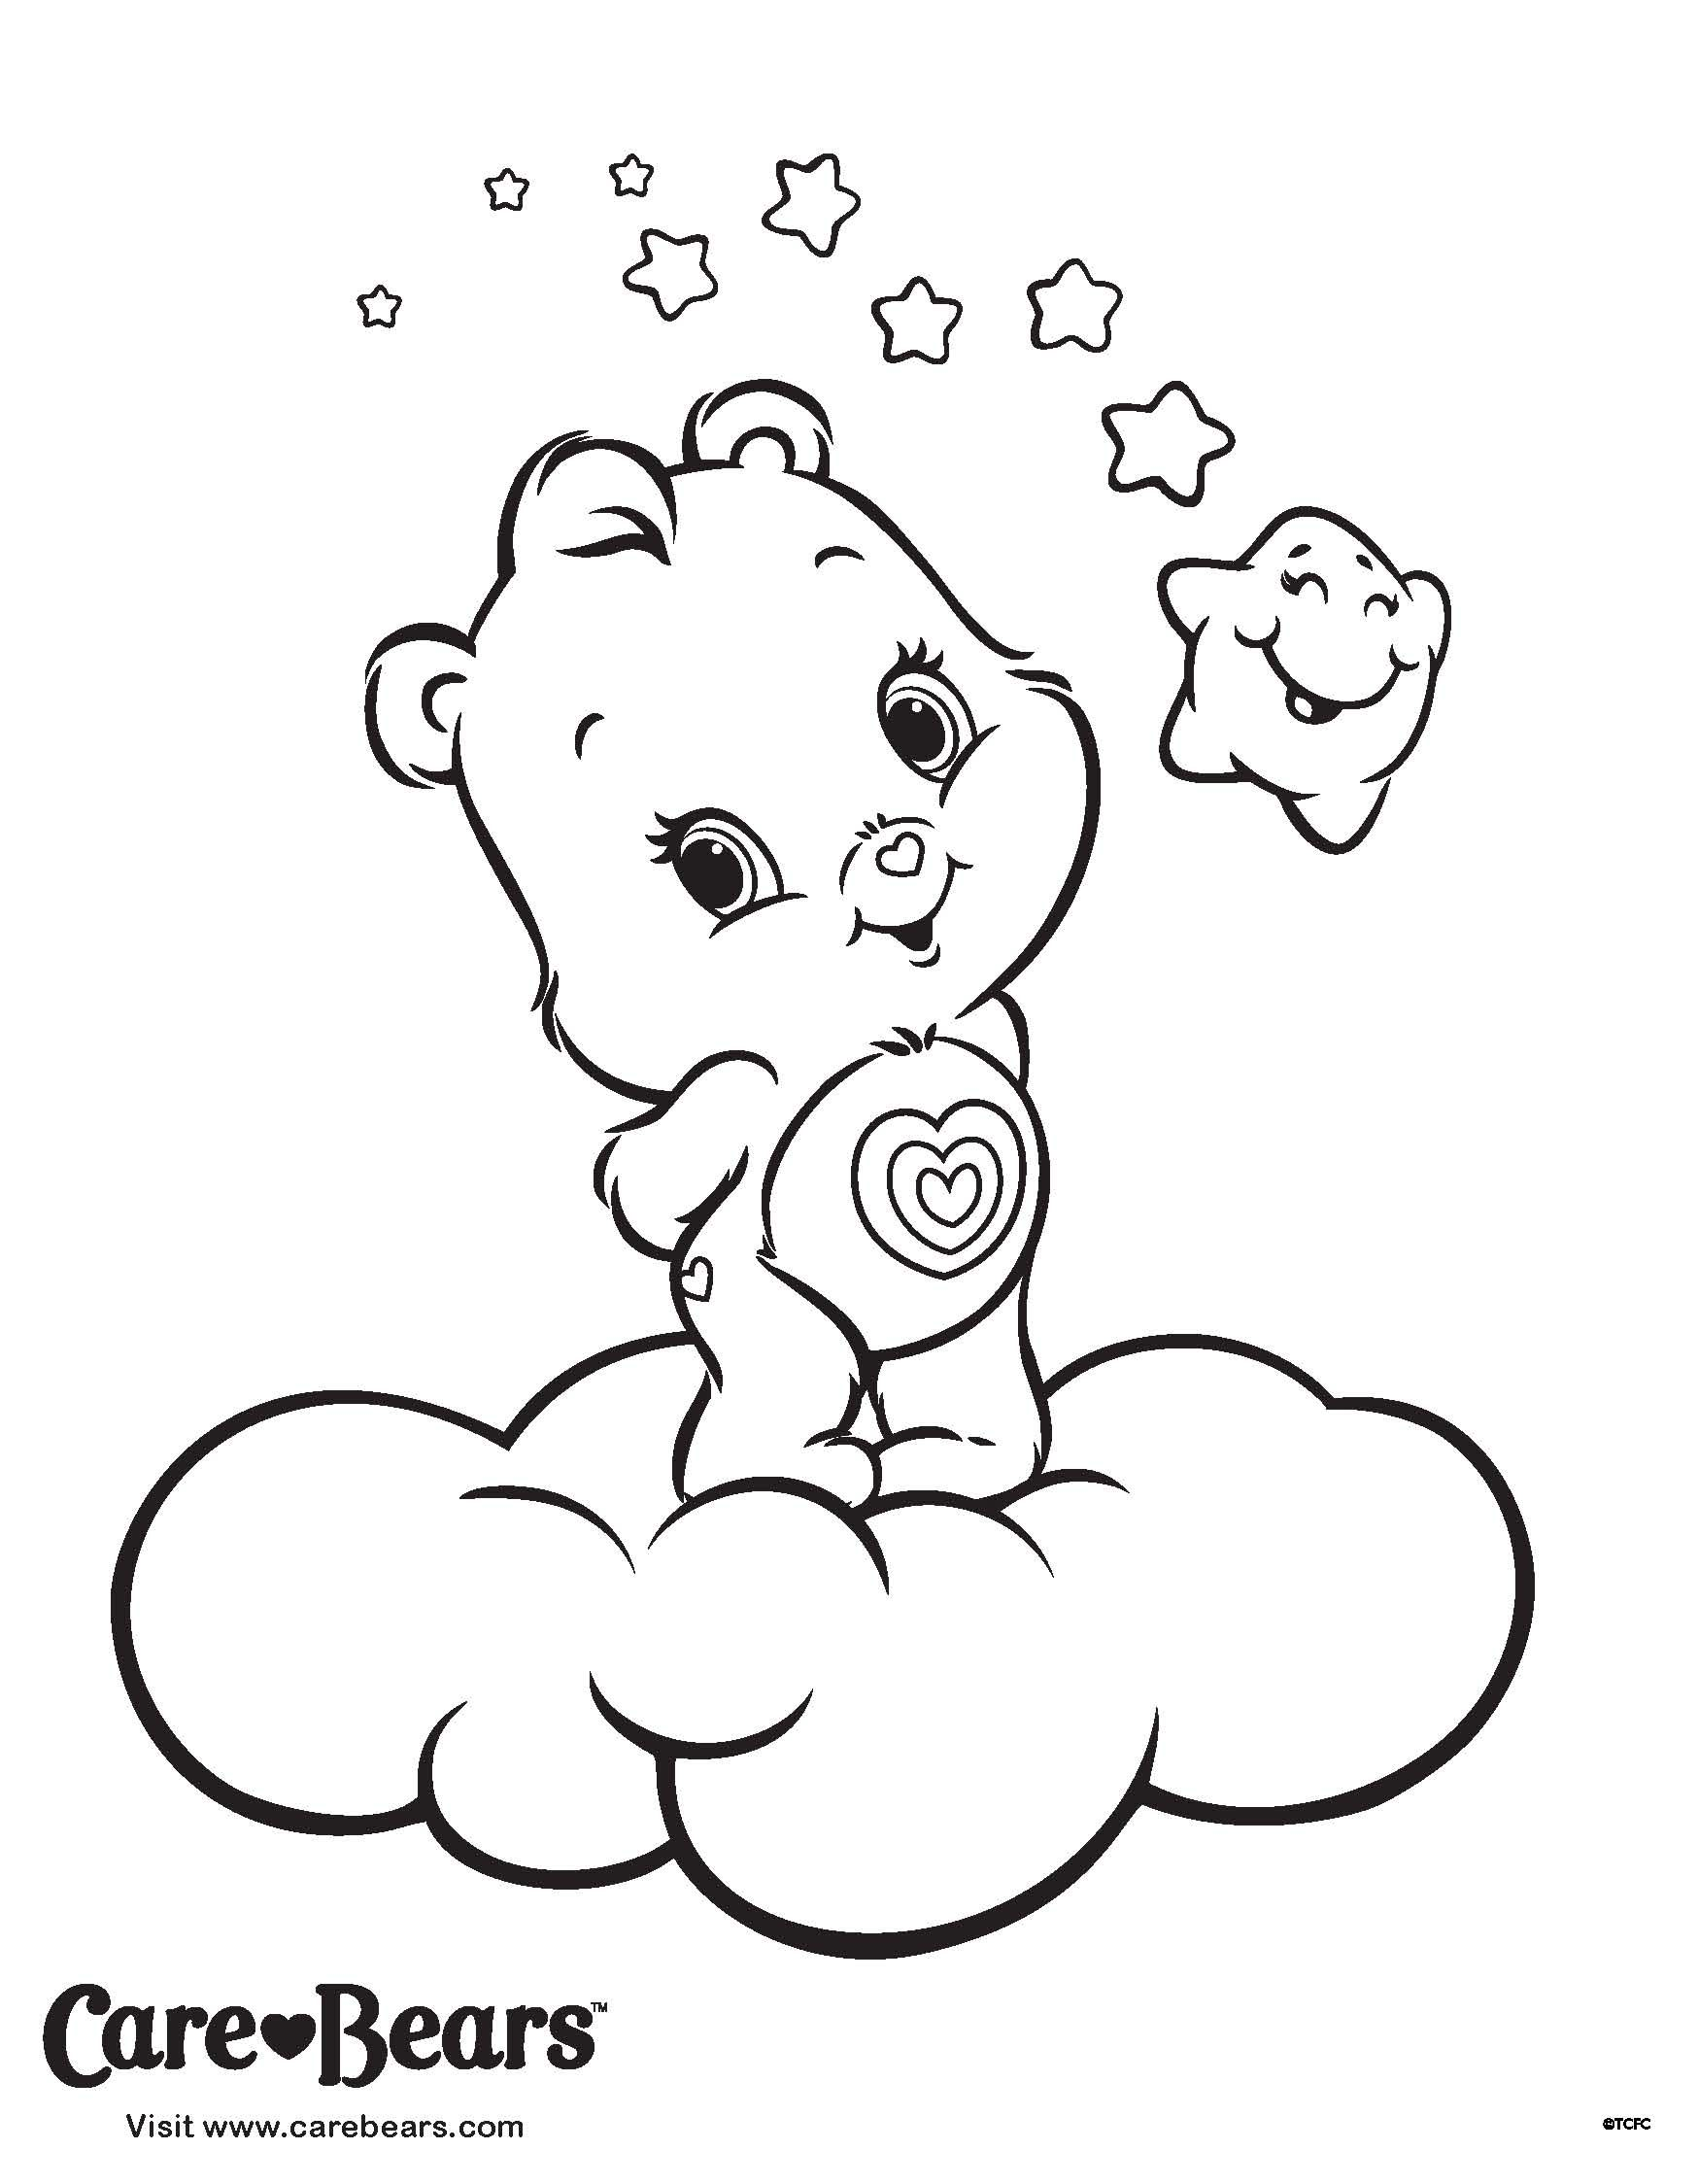 Book care coloring sheet - Care Bears Coloring Pages Bing Images